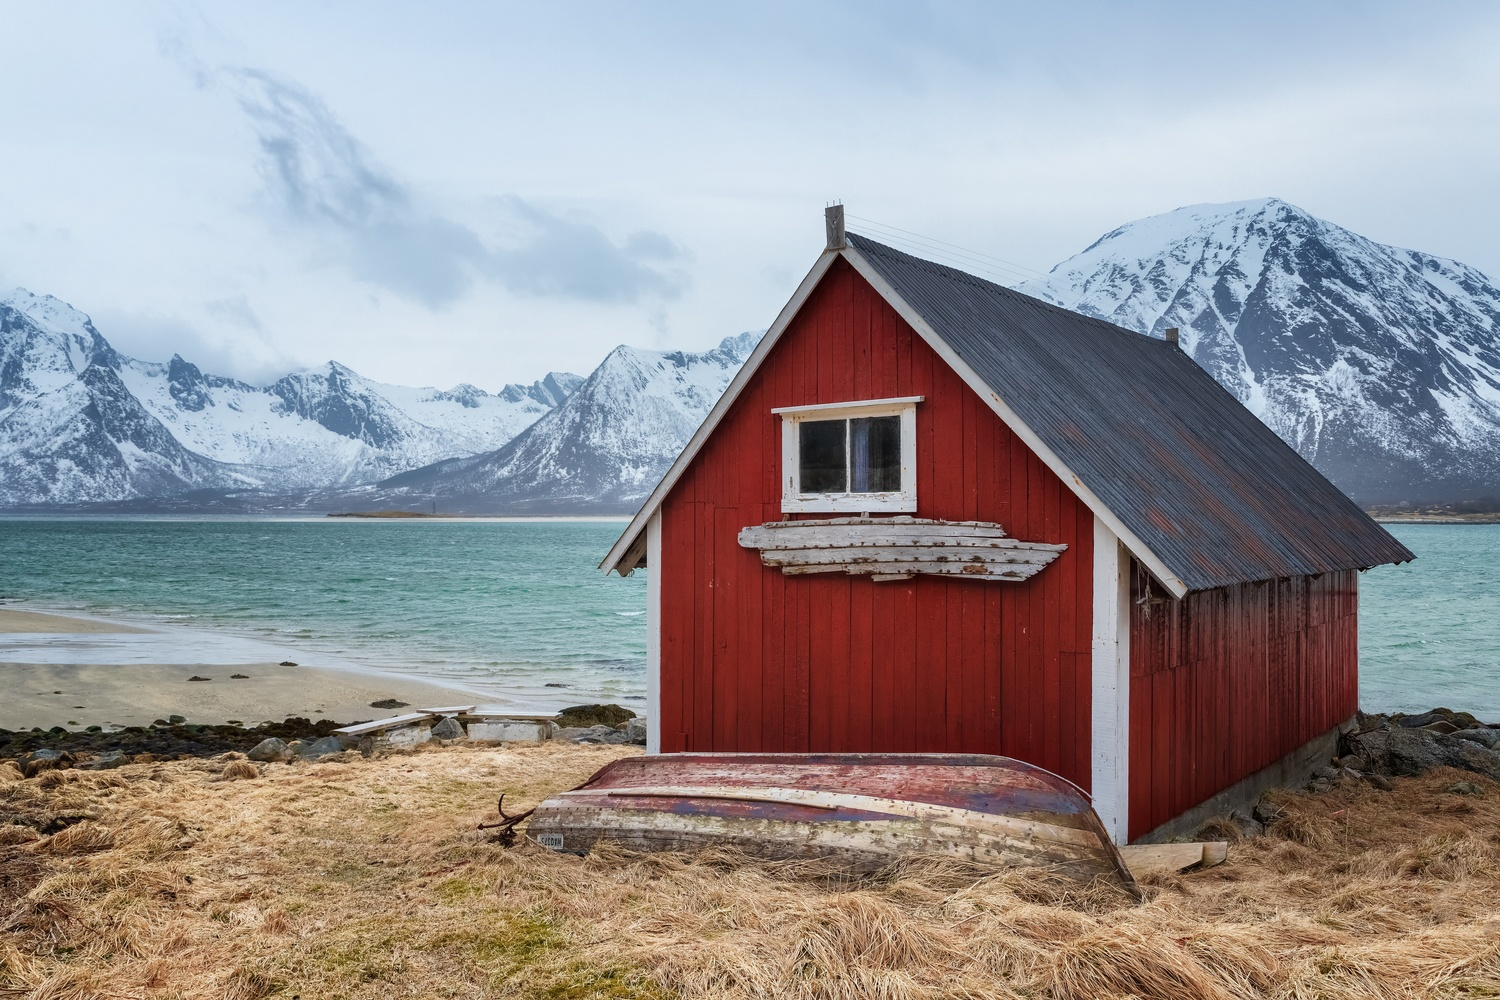 The Boat House by Rickard Eriksson